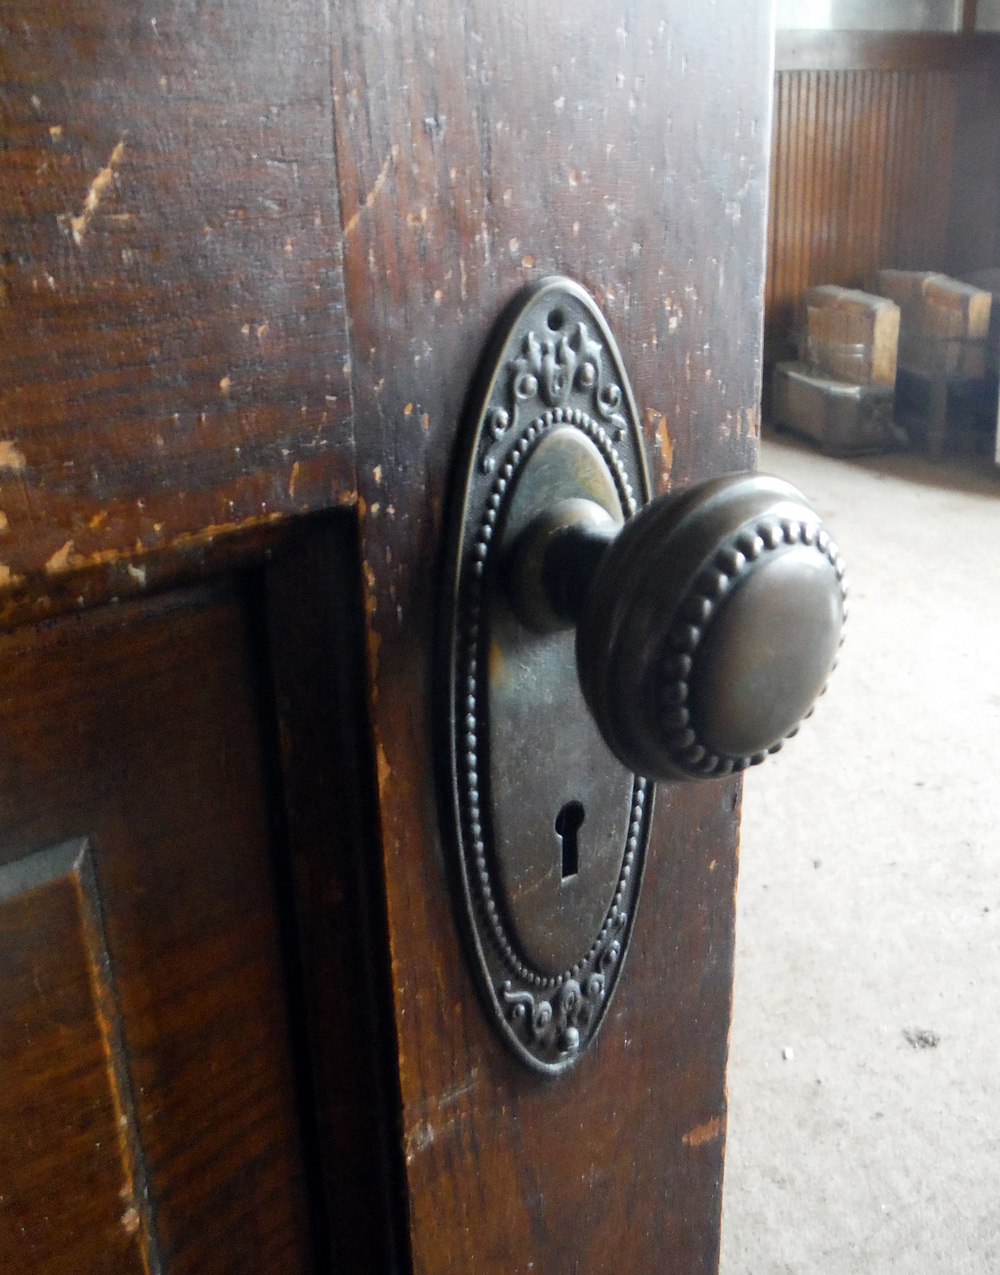 Original doorknob.  Photo by Sydney Haltom, March 2015.